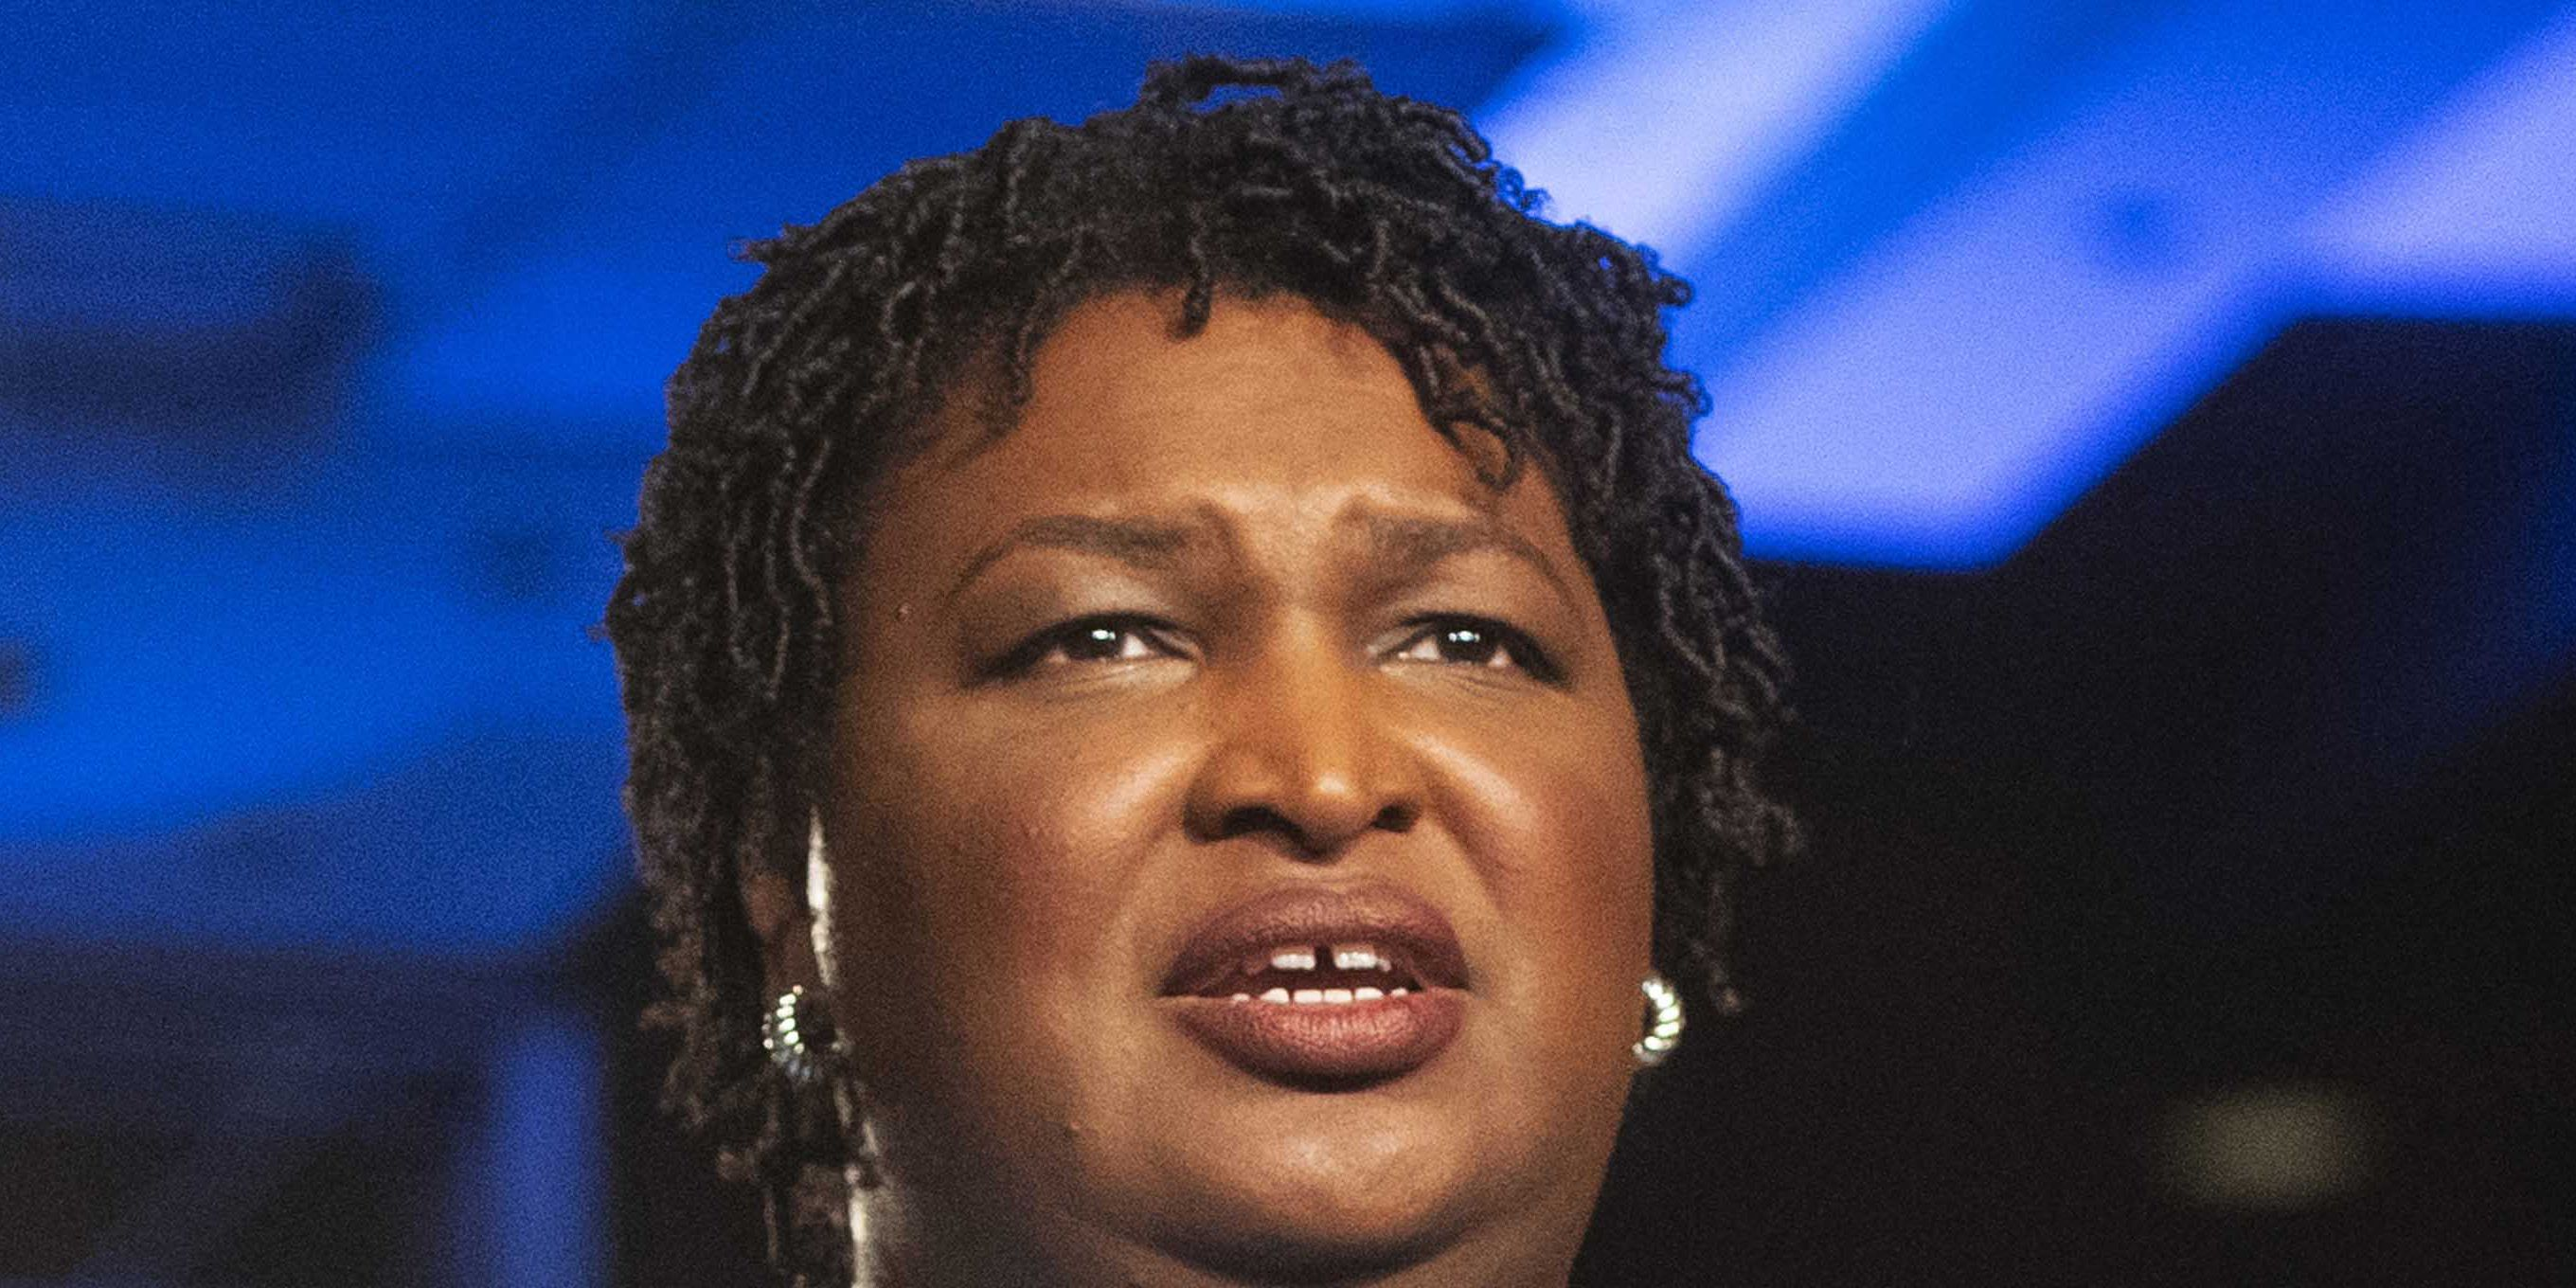 Stacey Abrams to give Democrats' response to State of Union